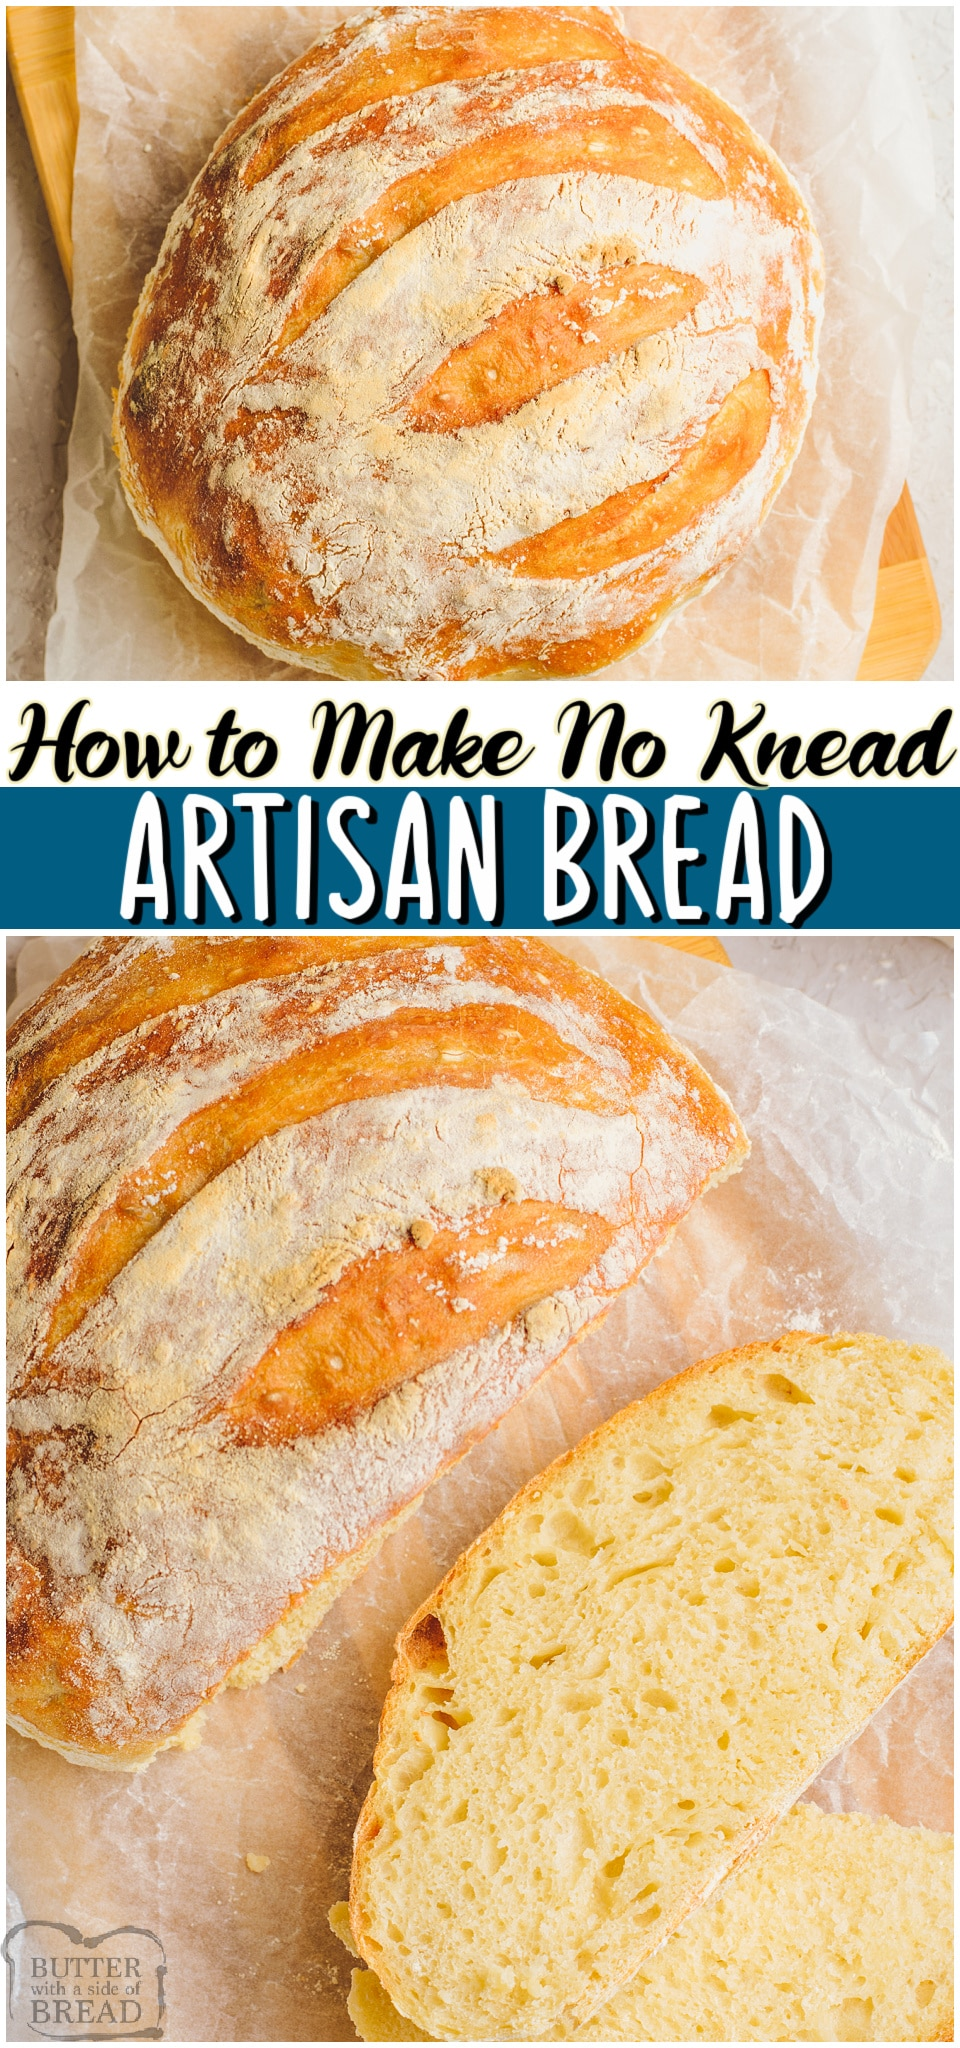 Easy Artisan Bread made with just 4 ingredients, plus, no kneading is required! This crusty white bread is surprisingly easy to make. Soft on the inside with an irresistible golden crust on the outside, it's perfect slathered with fresh butter. #bread #noknead #artisan #homemade #easyrecipe from BUTTER WITH A SIDE OF BREAD